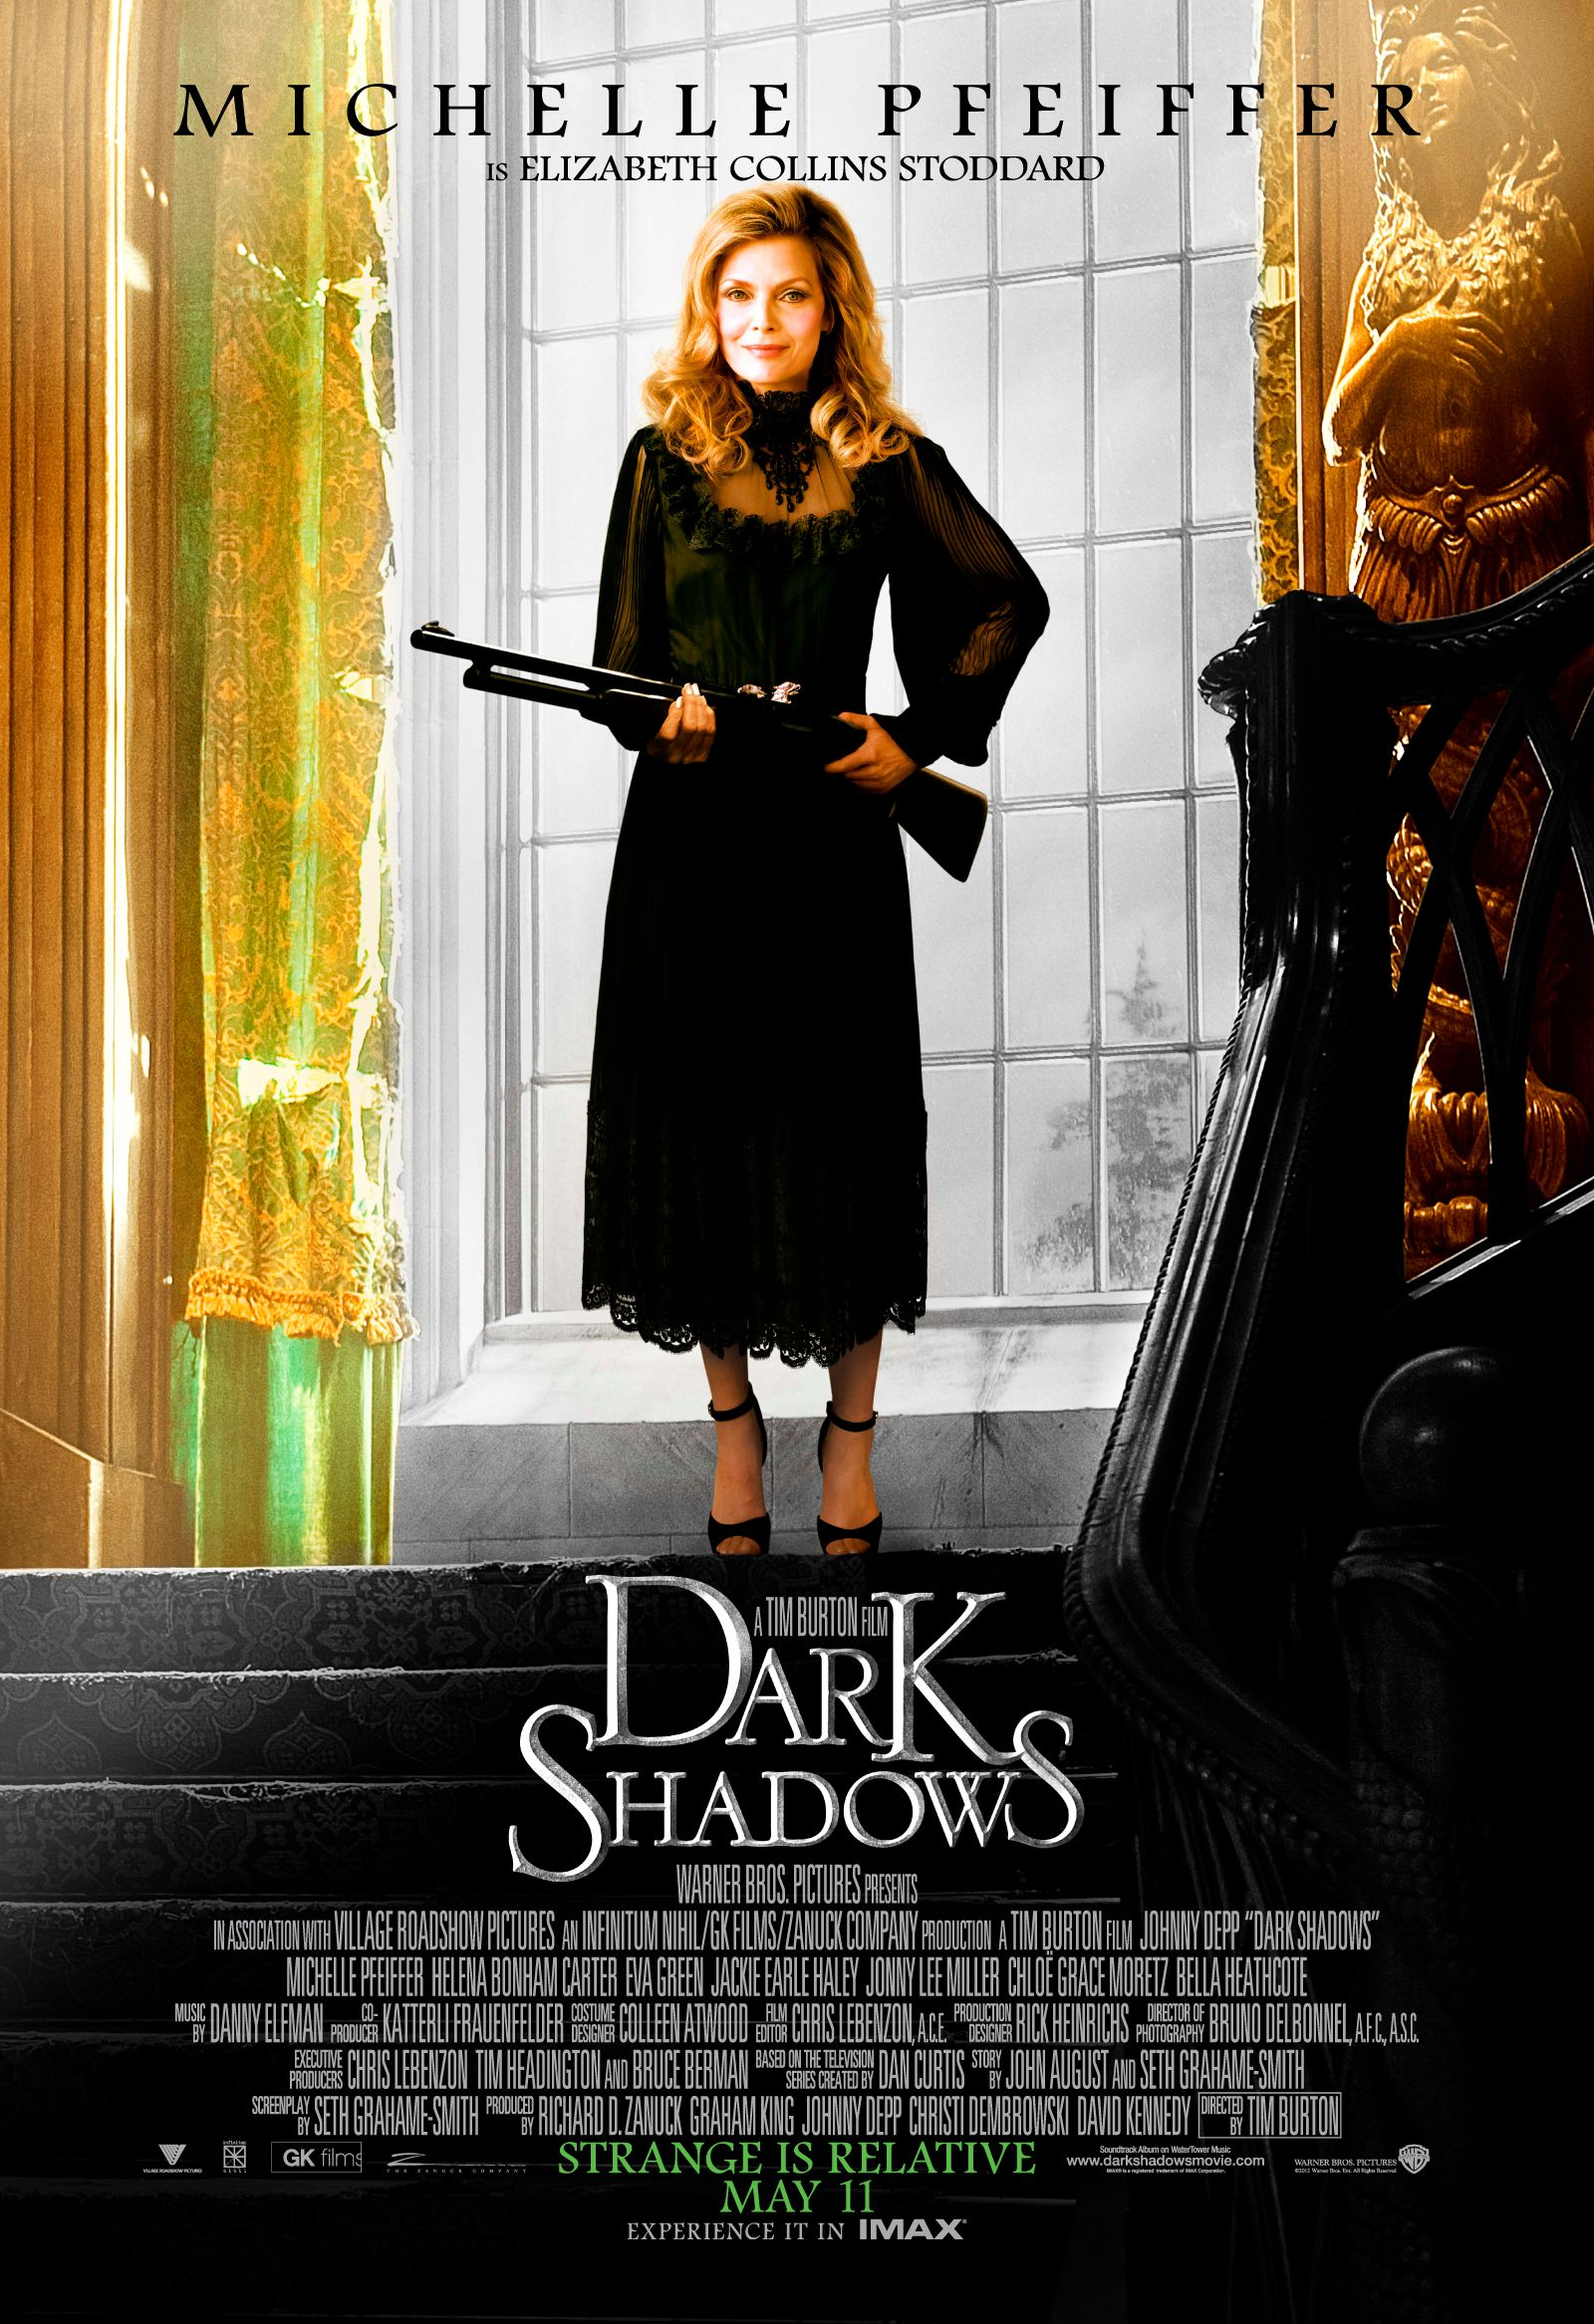 DARK SHADOWS Character Poster Banners | Collider